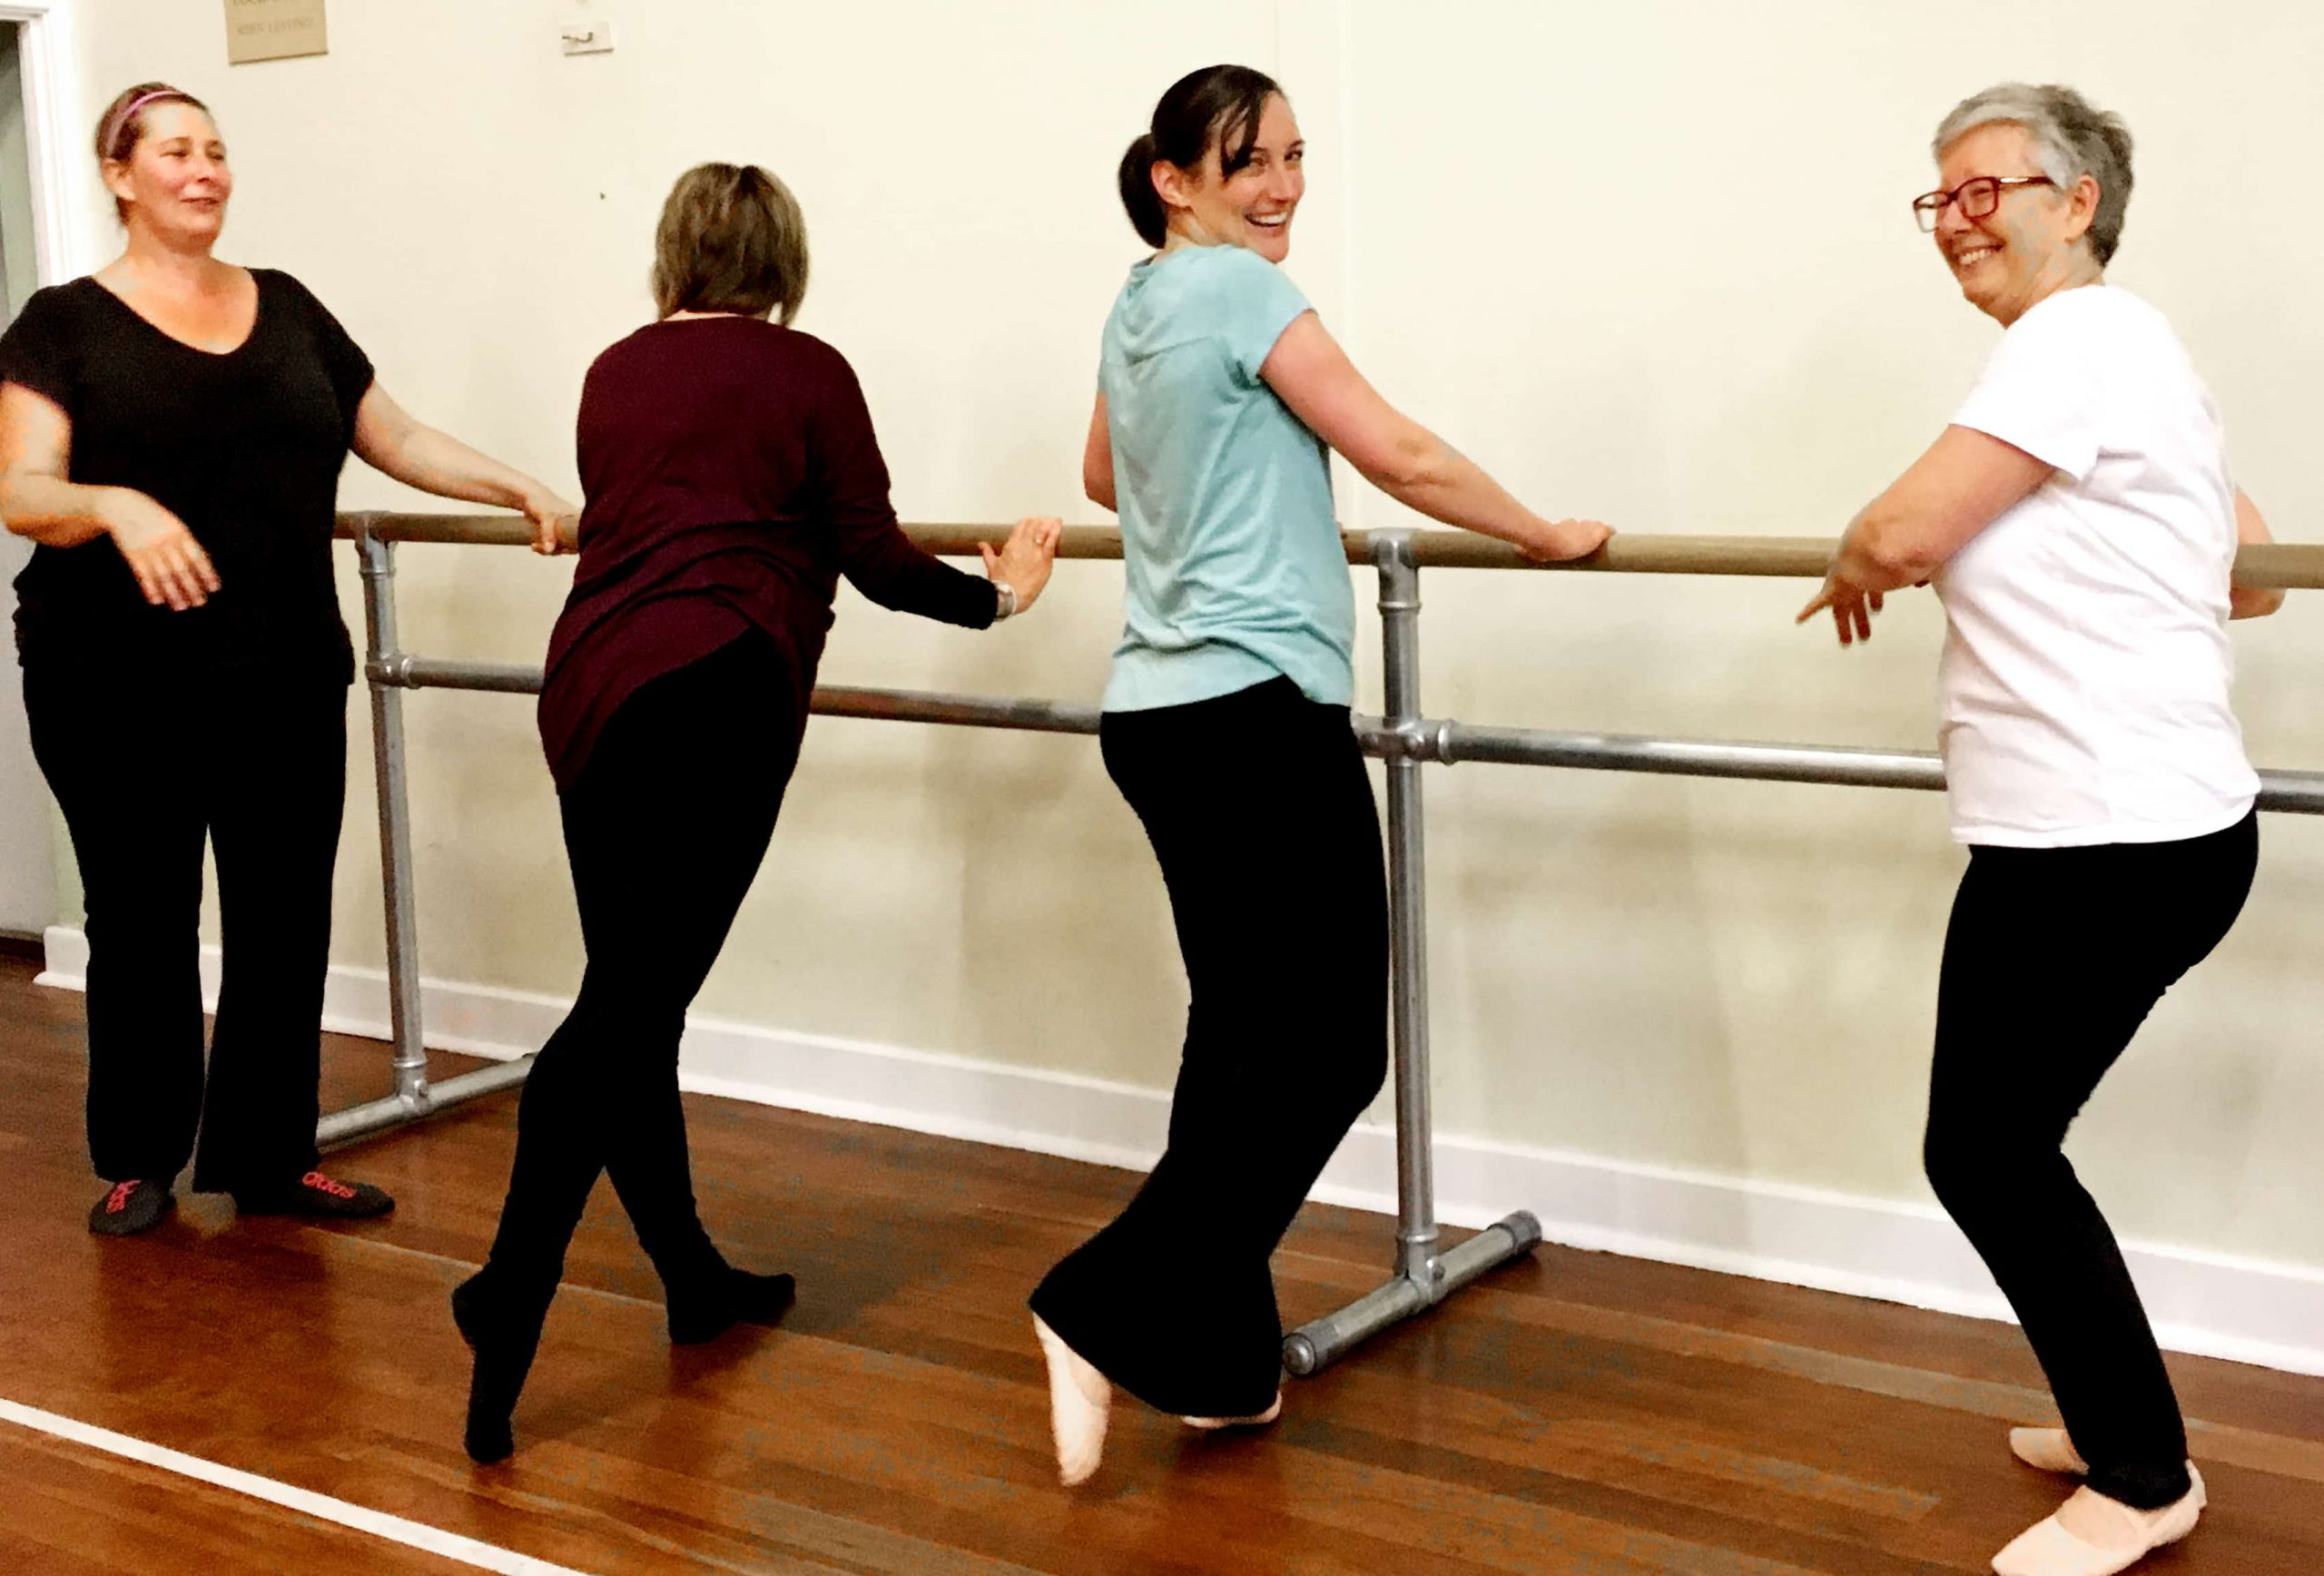 Elissa returned to ballet for the ankle exercises, and found new friends as well